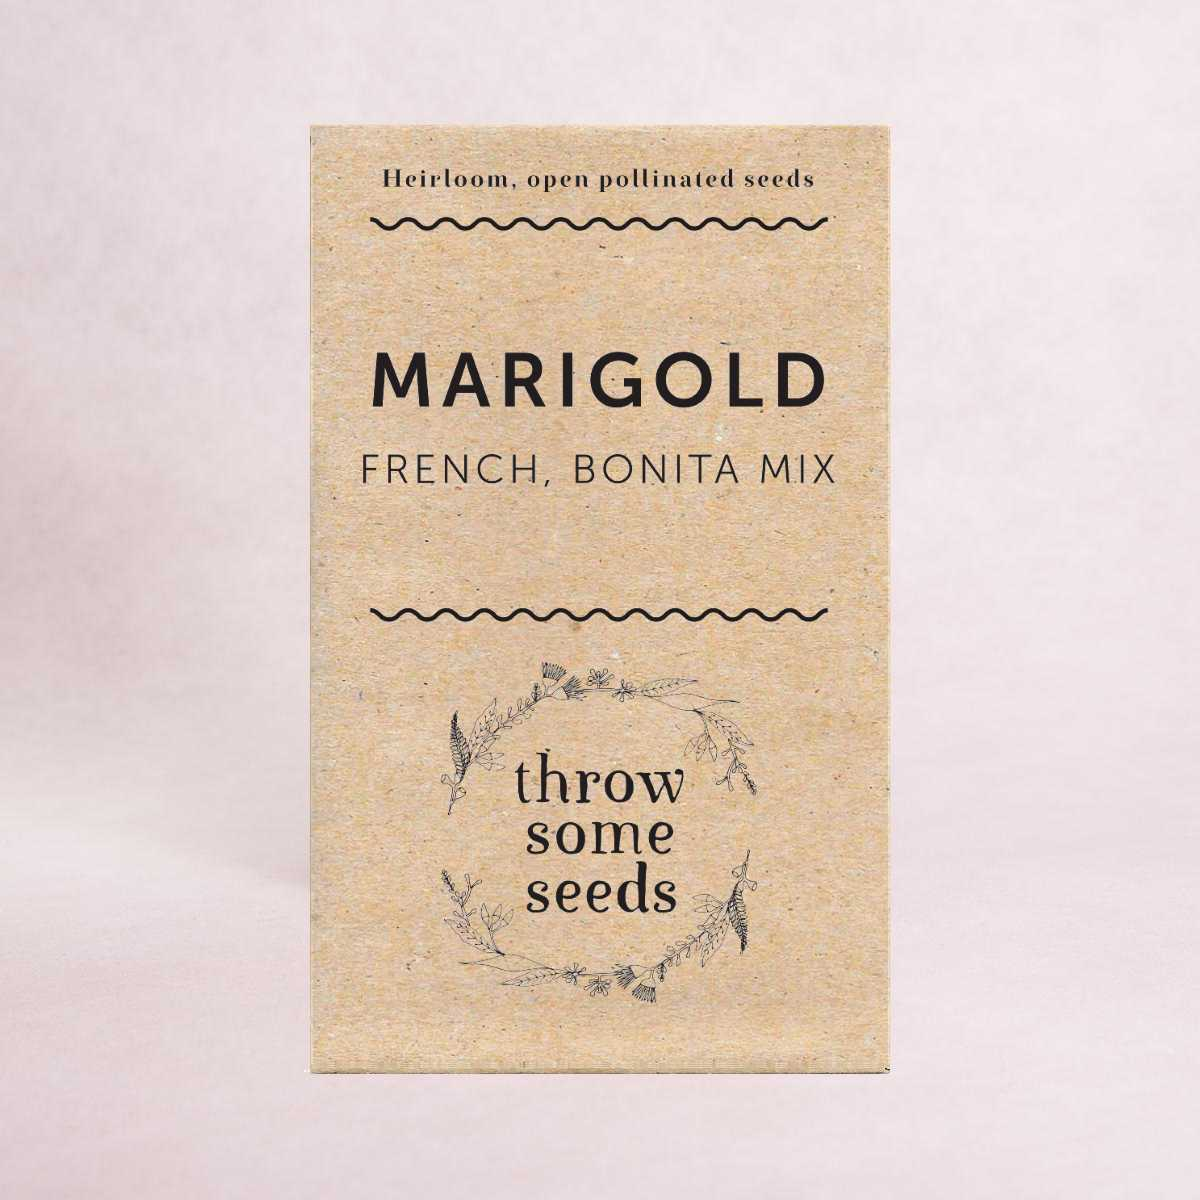 Marigold (French, Bonita Mix) - Heirloom Seeds - Seeds - Throw Some Seeds